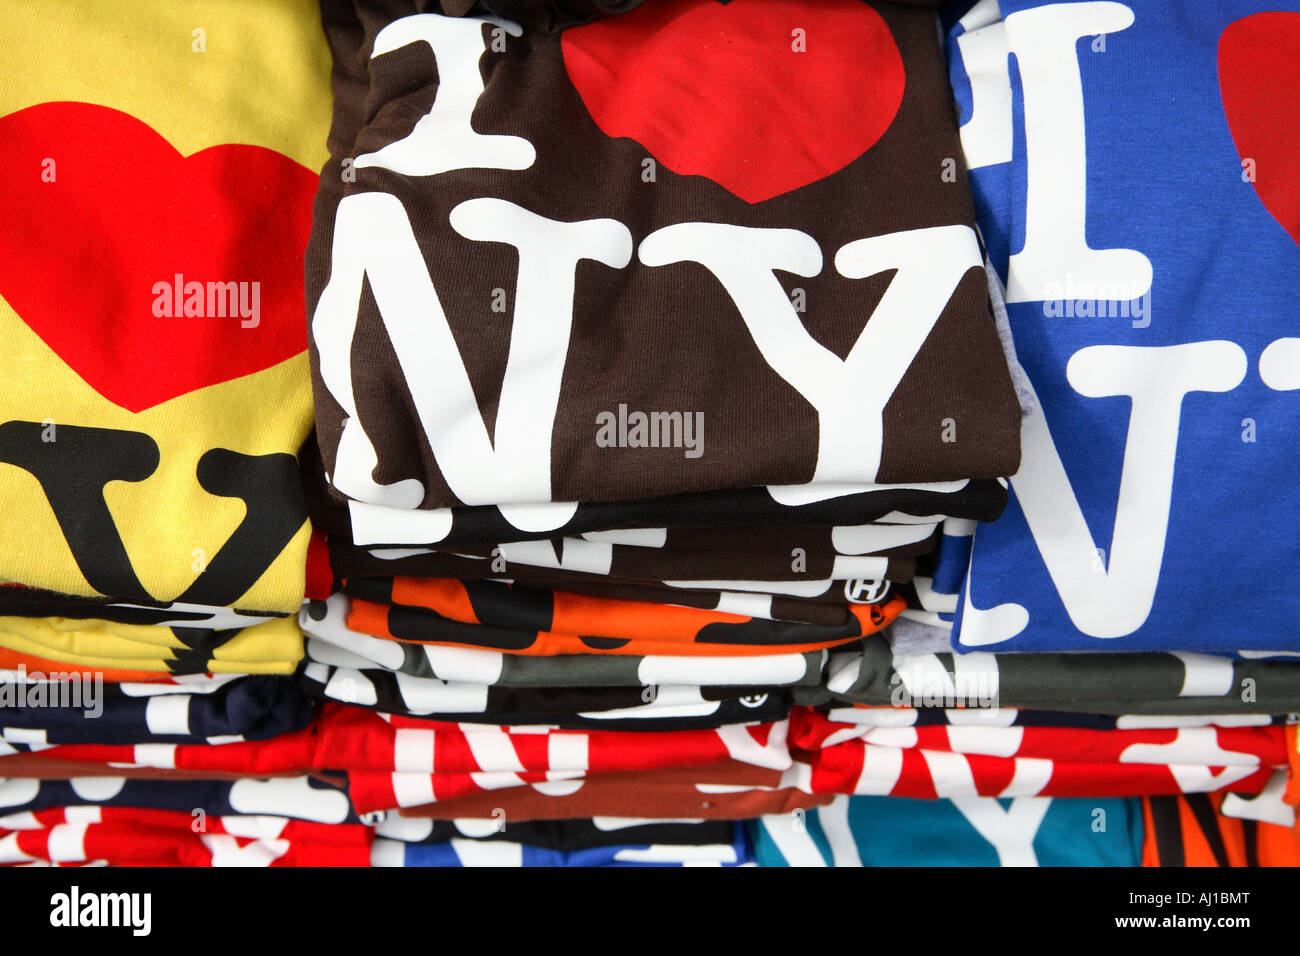 A colorful stack of I Love NY t-shirts - Stock Image